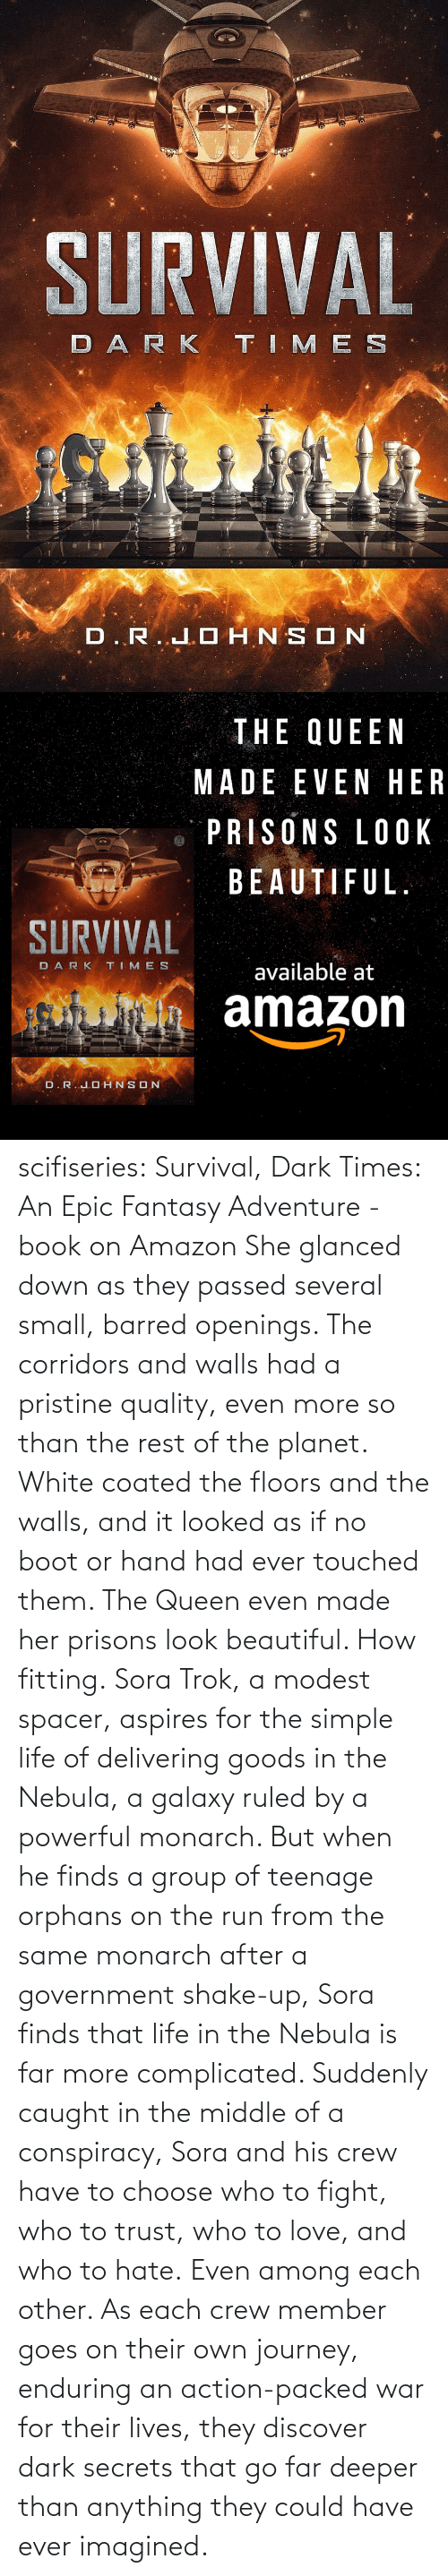 planet: scifiseries: Survival, Dark Times: An Epic Fantasy Adventure - book on Amazon  She glanced down as they  passed several small, barred openings. The corridors and walls had a  pristine quality, even more so than the rest of the planet. White coated  the floors and the walls, and it looked as if no boot or hand had ever  touched them.  The Queen even made her prisons look beautiful.  How fitting. Sora  Trok, a modest spacer, aspires for the simple life of delivering goods  in the Nebula, a galaxy ruled by a powerful monarch. But when he finds a  group of teenage orphans on the run from the same monarch after a  government shake-up, Sora finds that life in the Nebula is far more complicated.  Suddenly  caught in the middle of a conspiracy, Sora and his crew have to choose  who to fight, who to trust, who to love, and who to hate. Even among each other.  As  each crew member goes on their own journey, enduring an action-packed  war for their lives, they discover dark secrets that go far deeper than  anything they could have ever imagined.